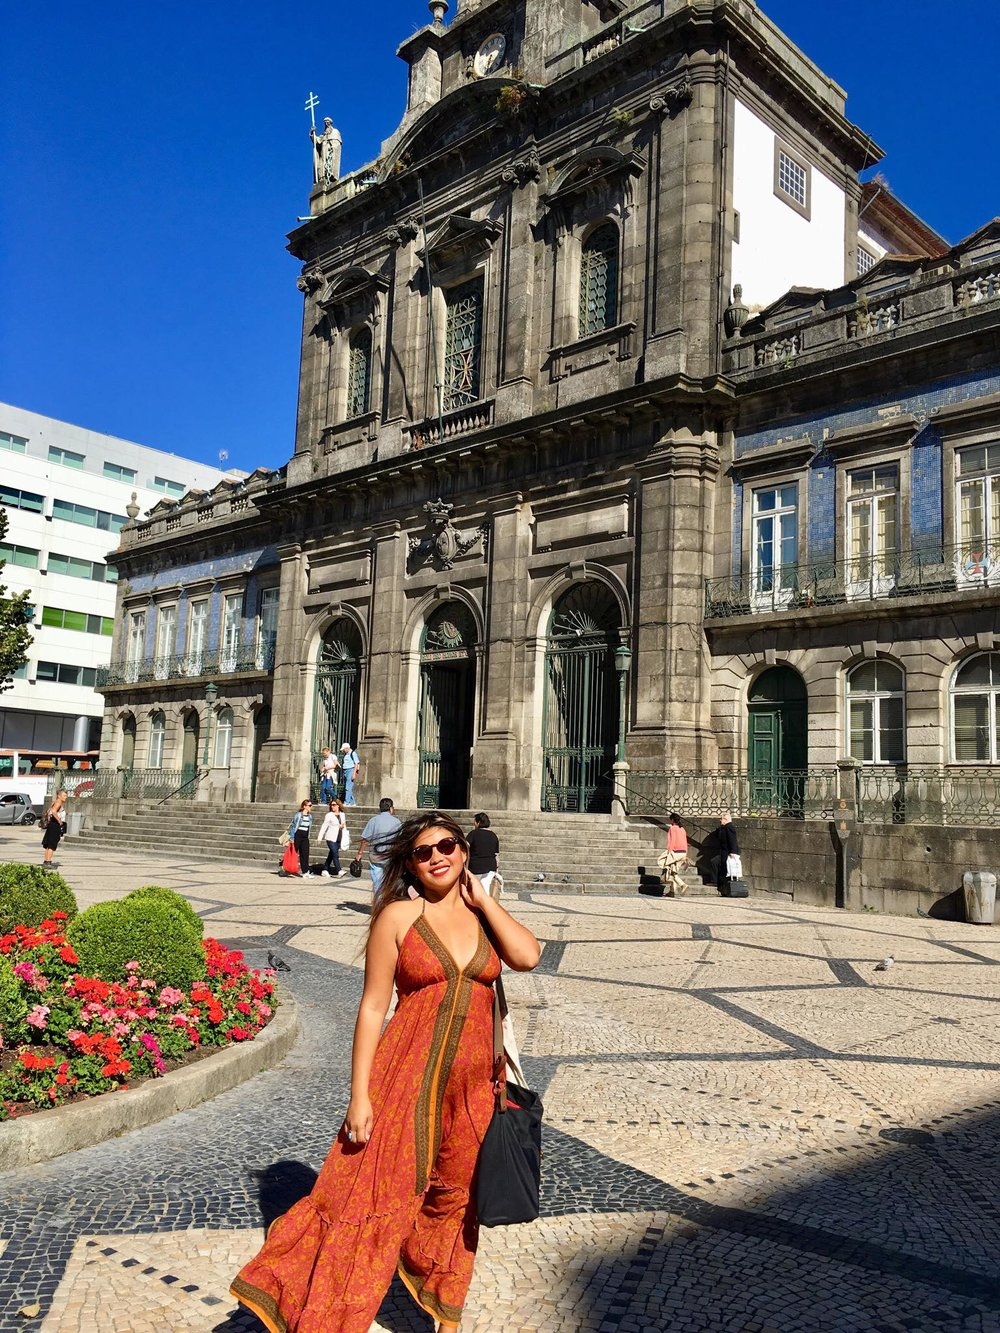 Kach Solo Travels Day 54: Arrived in Porto, Portugal last night ❤️ My 118th country! 🙏